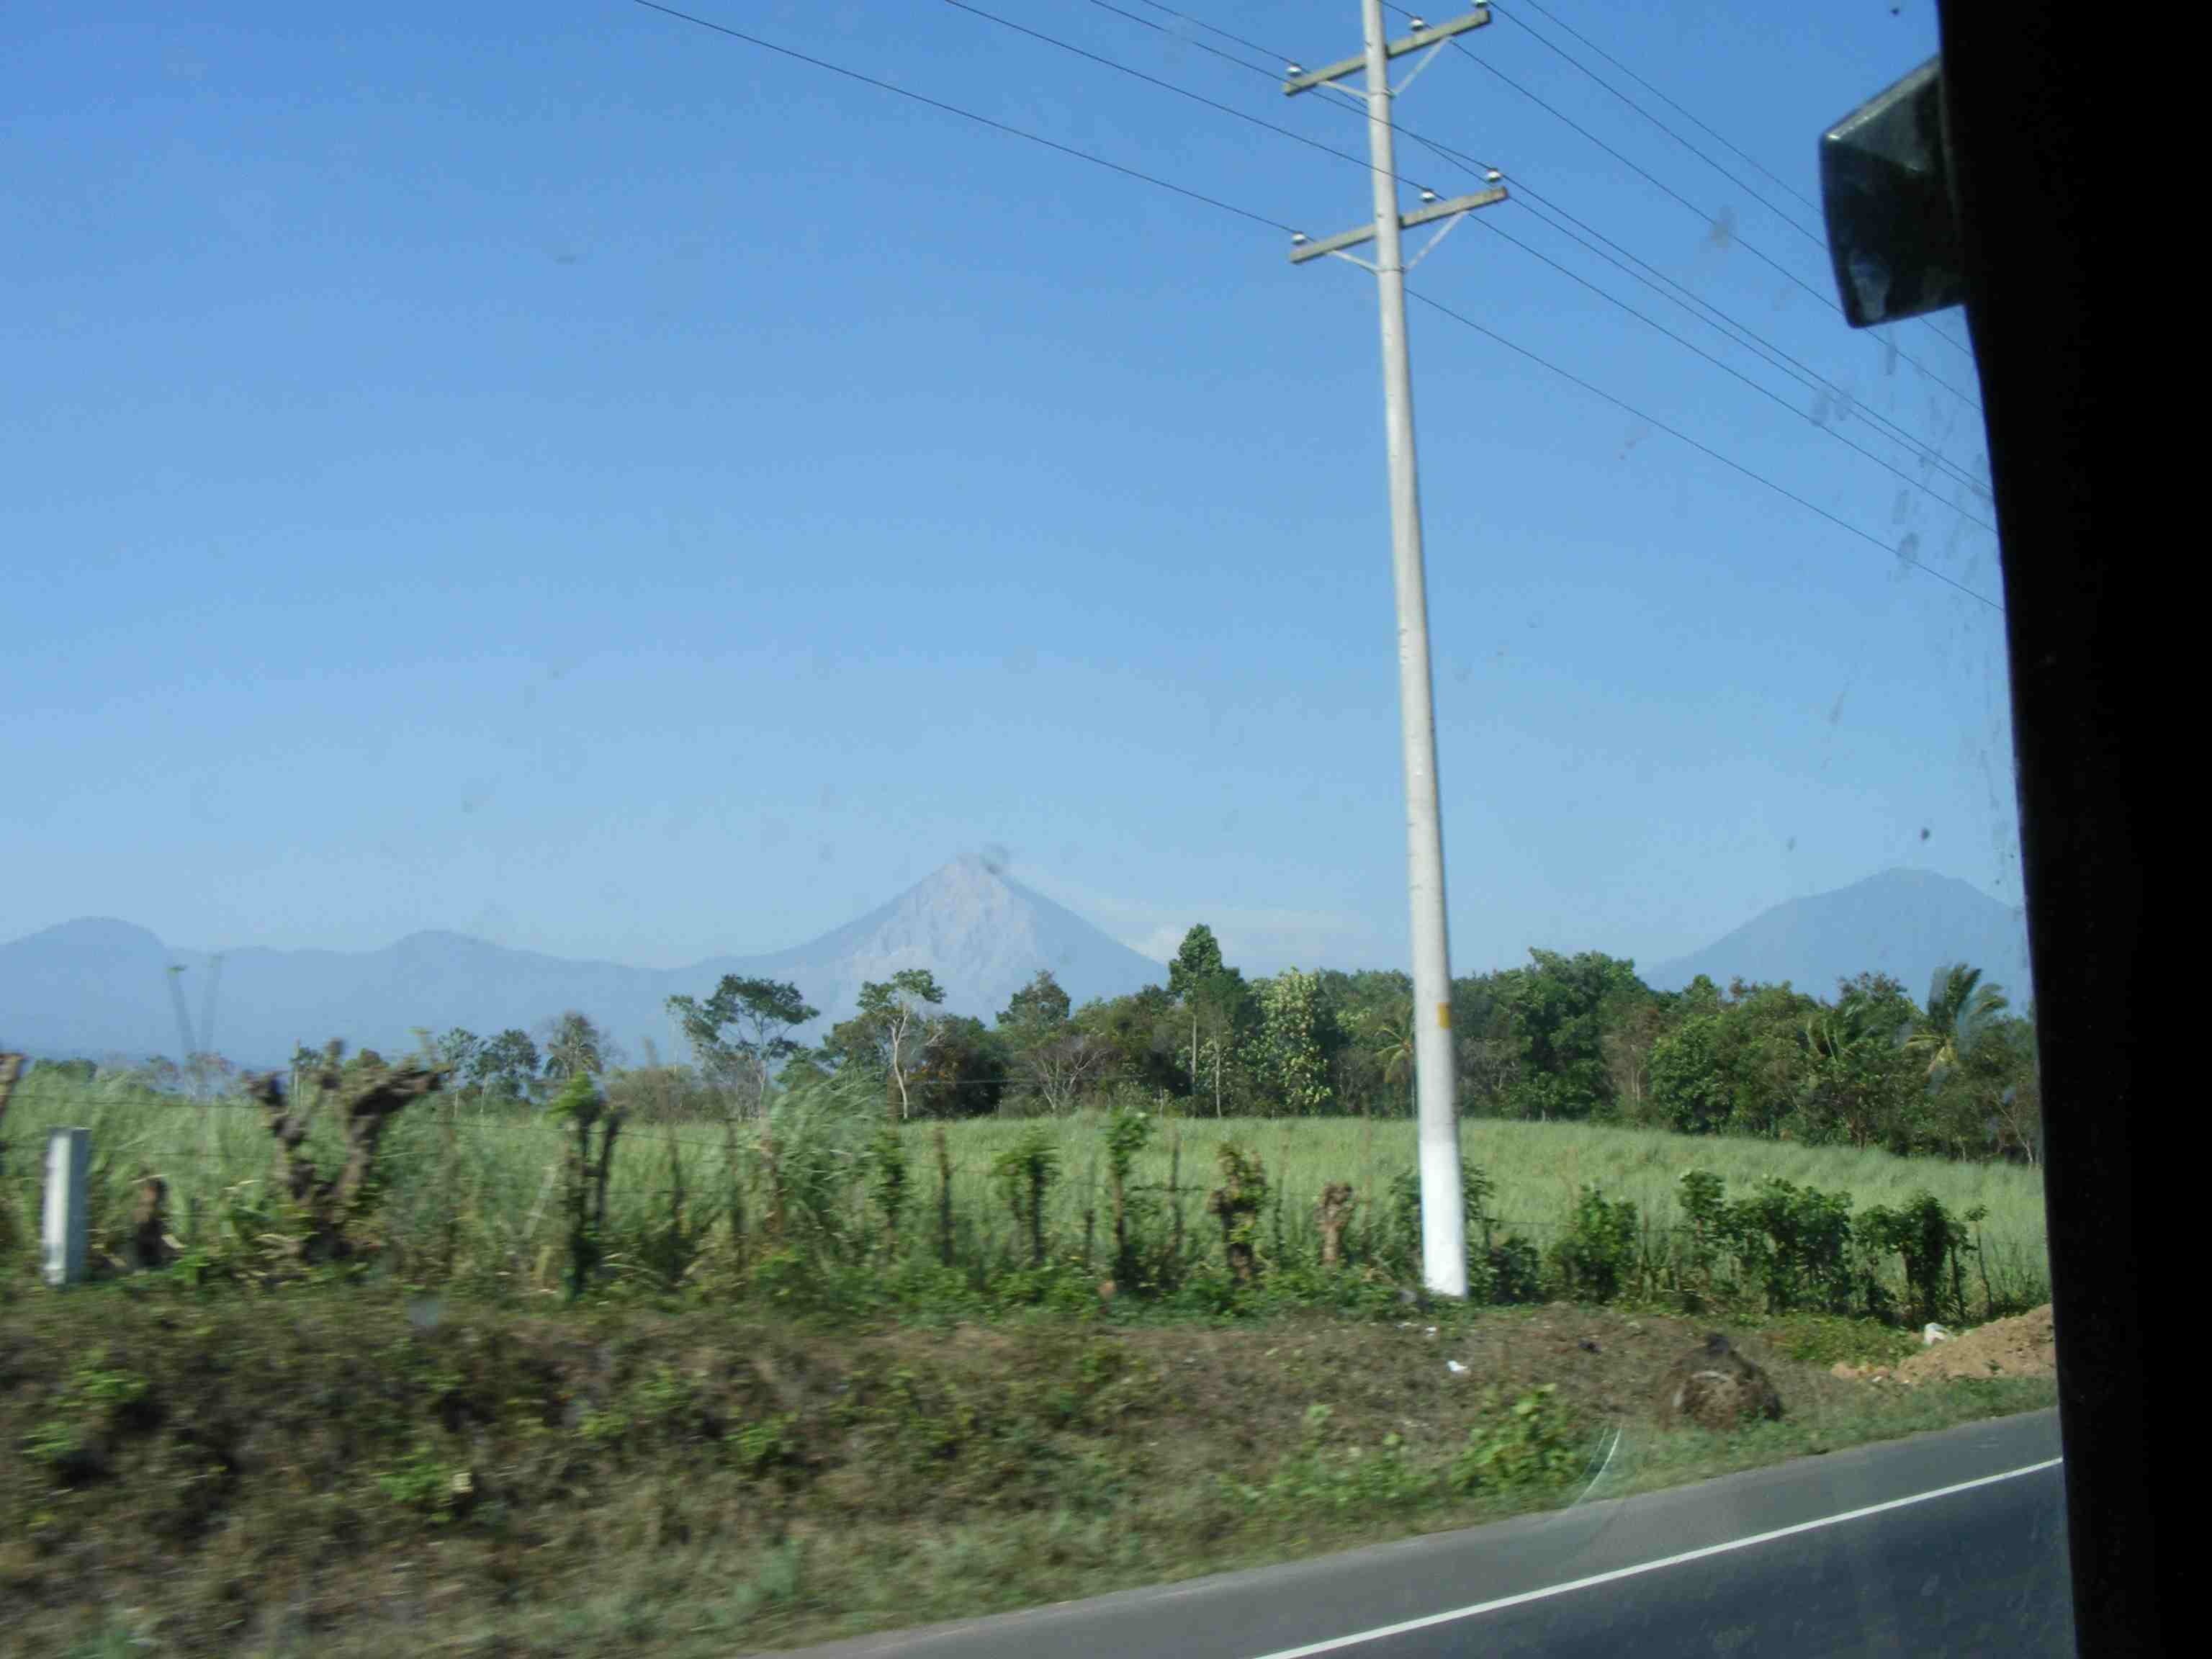 Endless sugarcane fields with Mountains on horizon